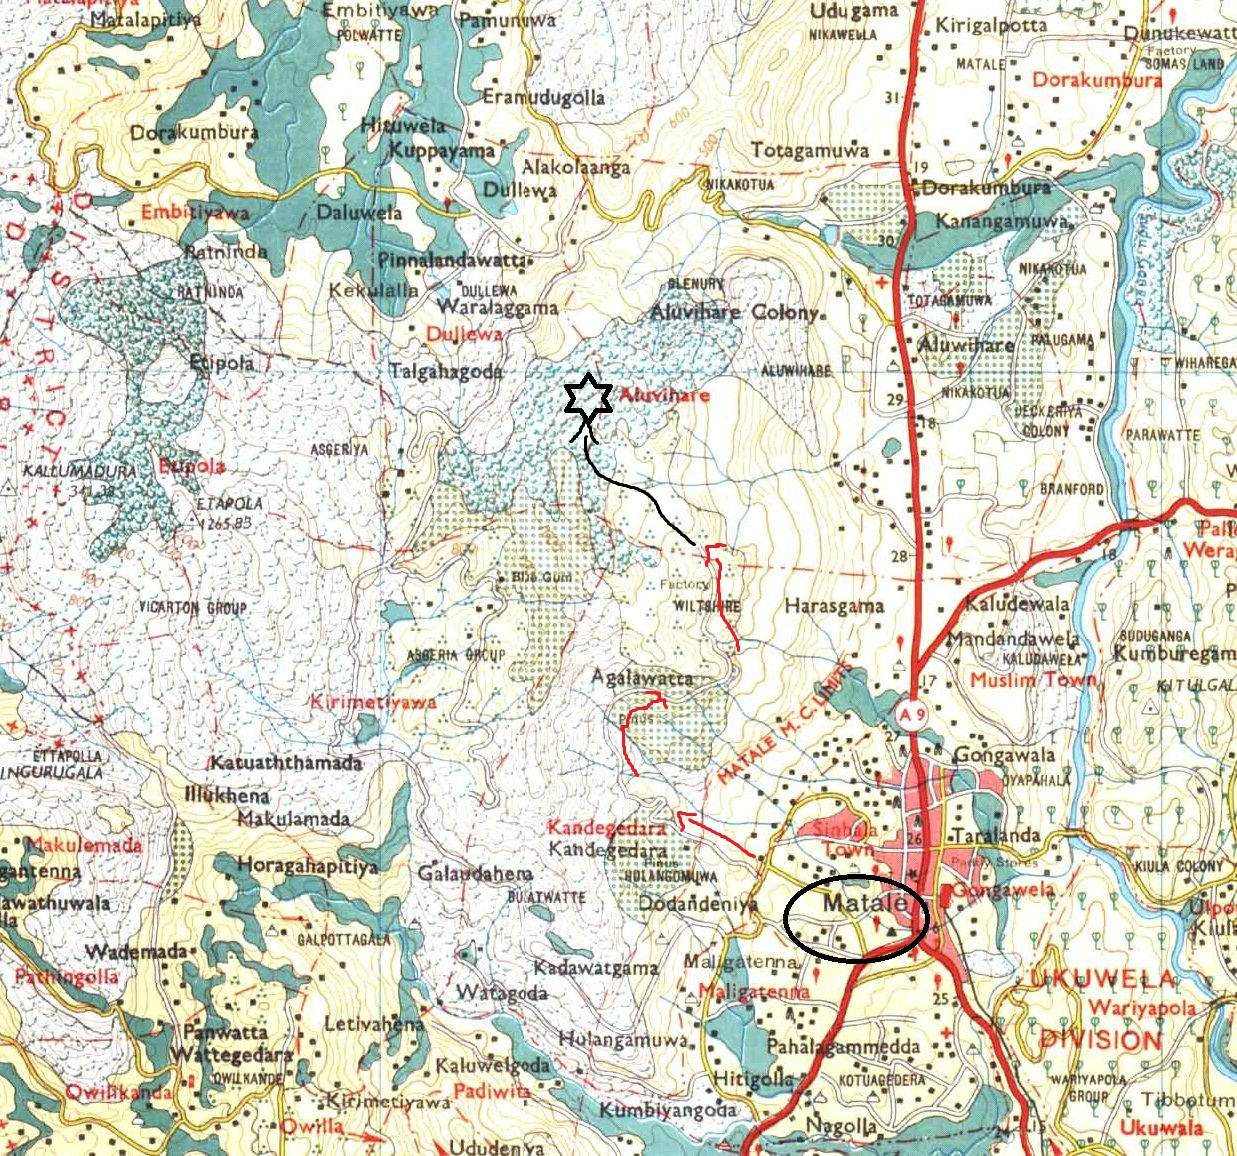 Map reading always helped us. Matale town is shown by black circle. Then follow the pathway (mortable road) in red arrows. Latter part goes through a tea estate according to the map. But we didn't come across such area. Most probably it is covered with Pines now. Black line shows approximate path towards the peak. Black star might be the peak.